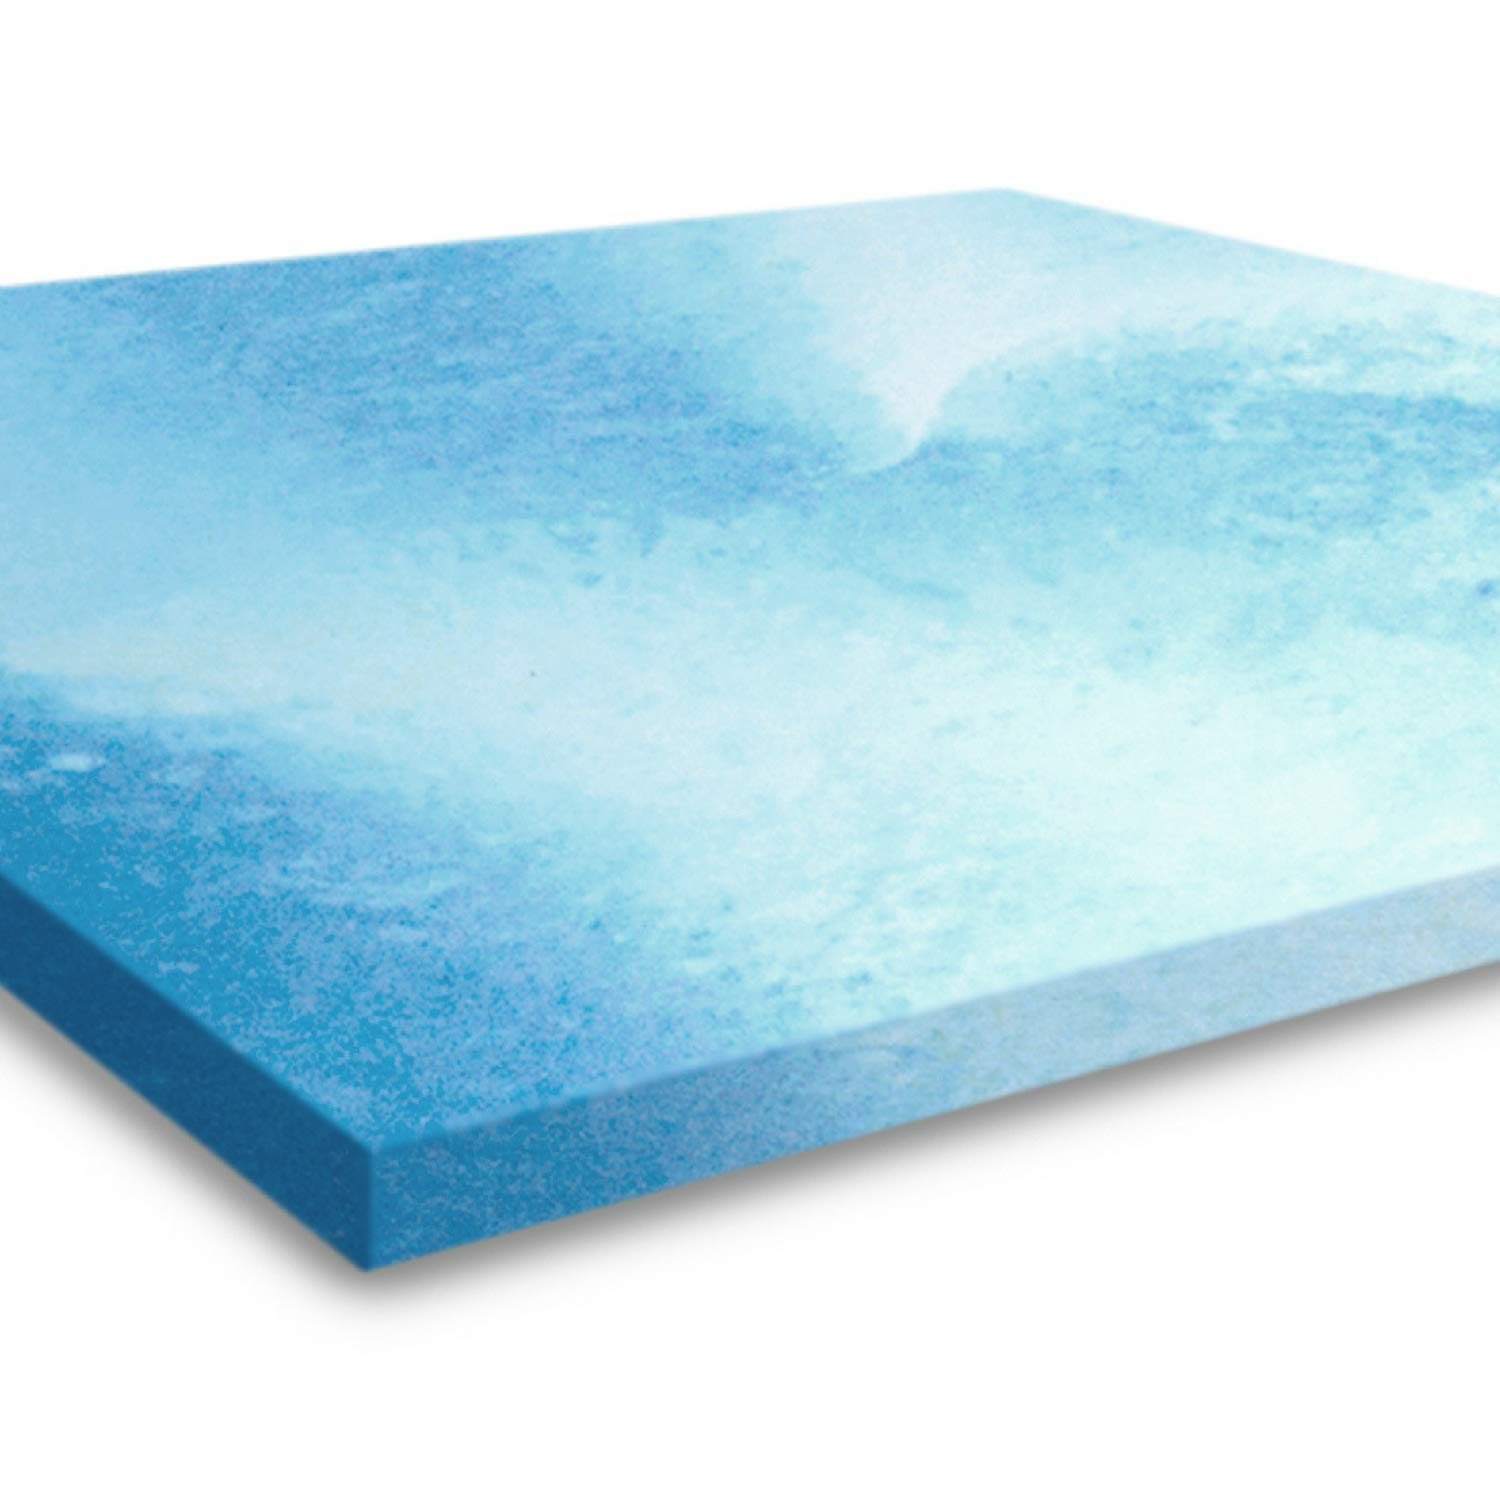 Gel Memory Foam Mattress Topper, Queen Size 2 Inch Thick, Ultra-Premium Gel-Infused Memory Foam Mattress/Bed Topper/Pad for a Cooling, Conforming, and Comfortable Sleep. Made in The USA